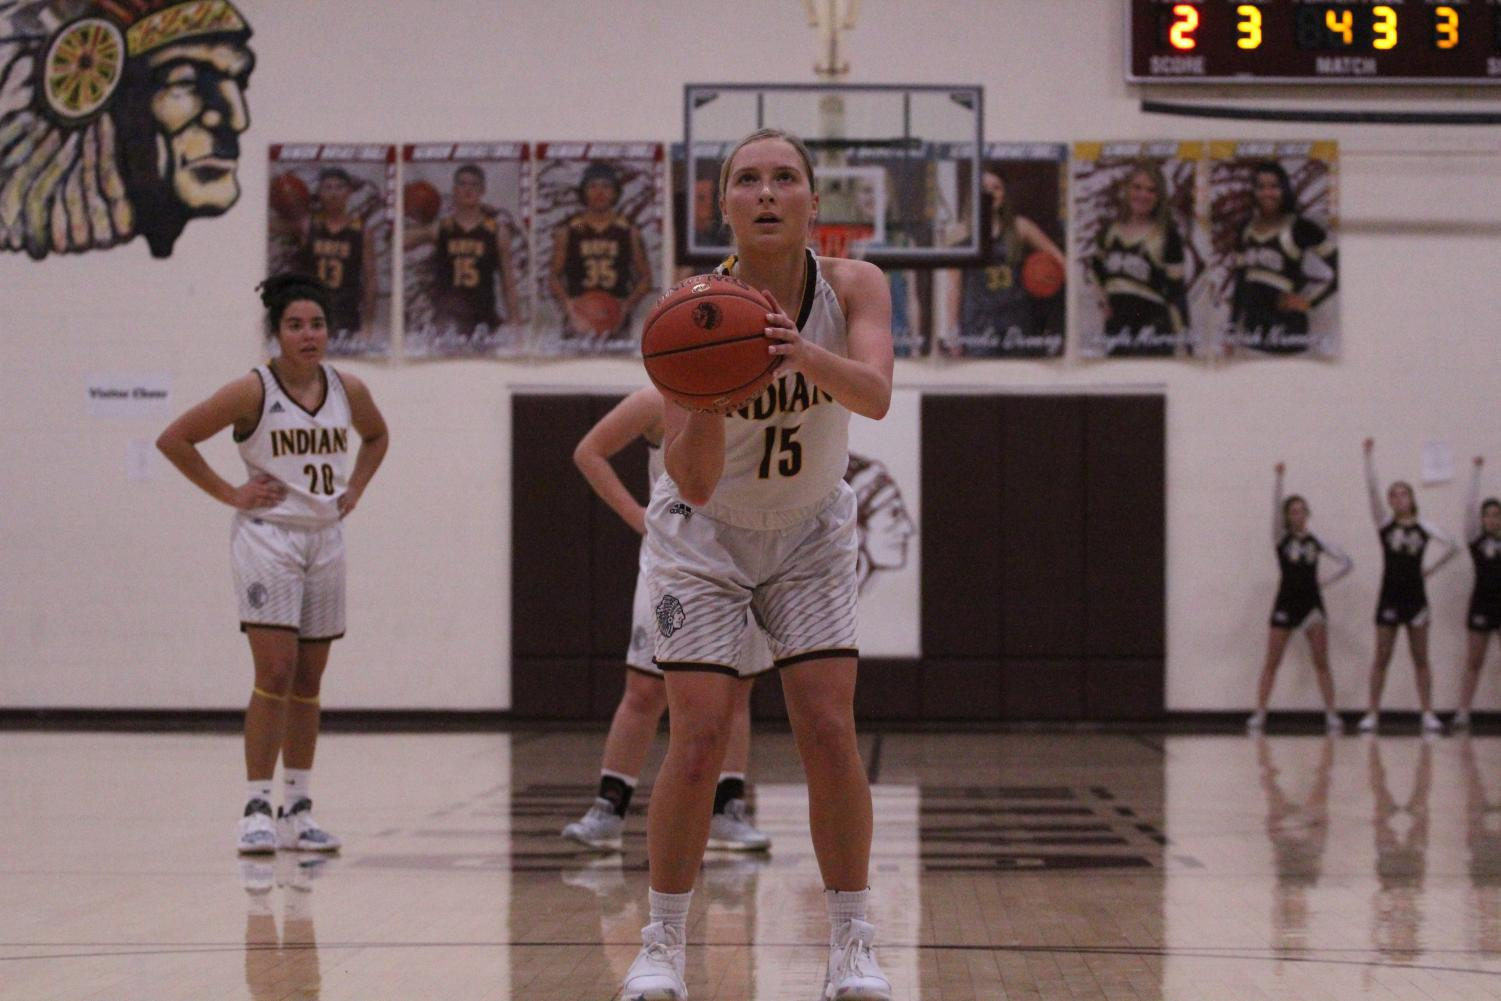 Junior Brooklyn Schaffer shoots a free throw in a home game during the Shootout in December.